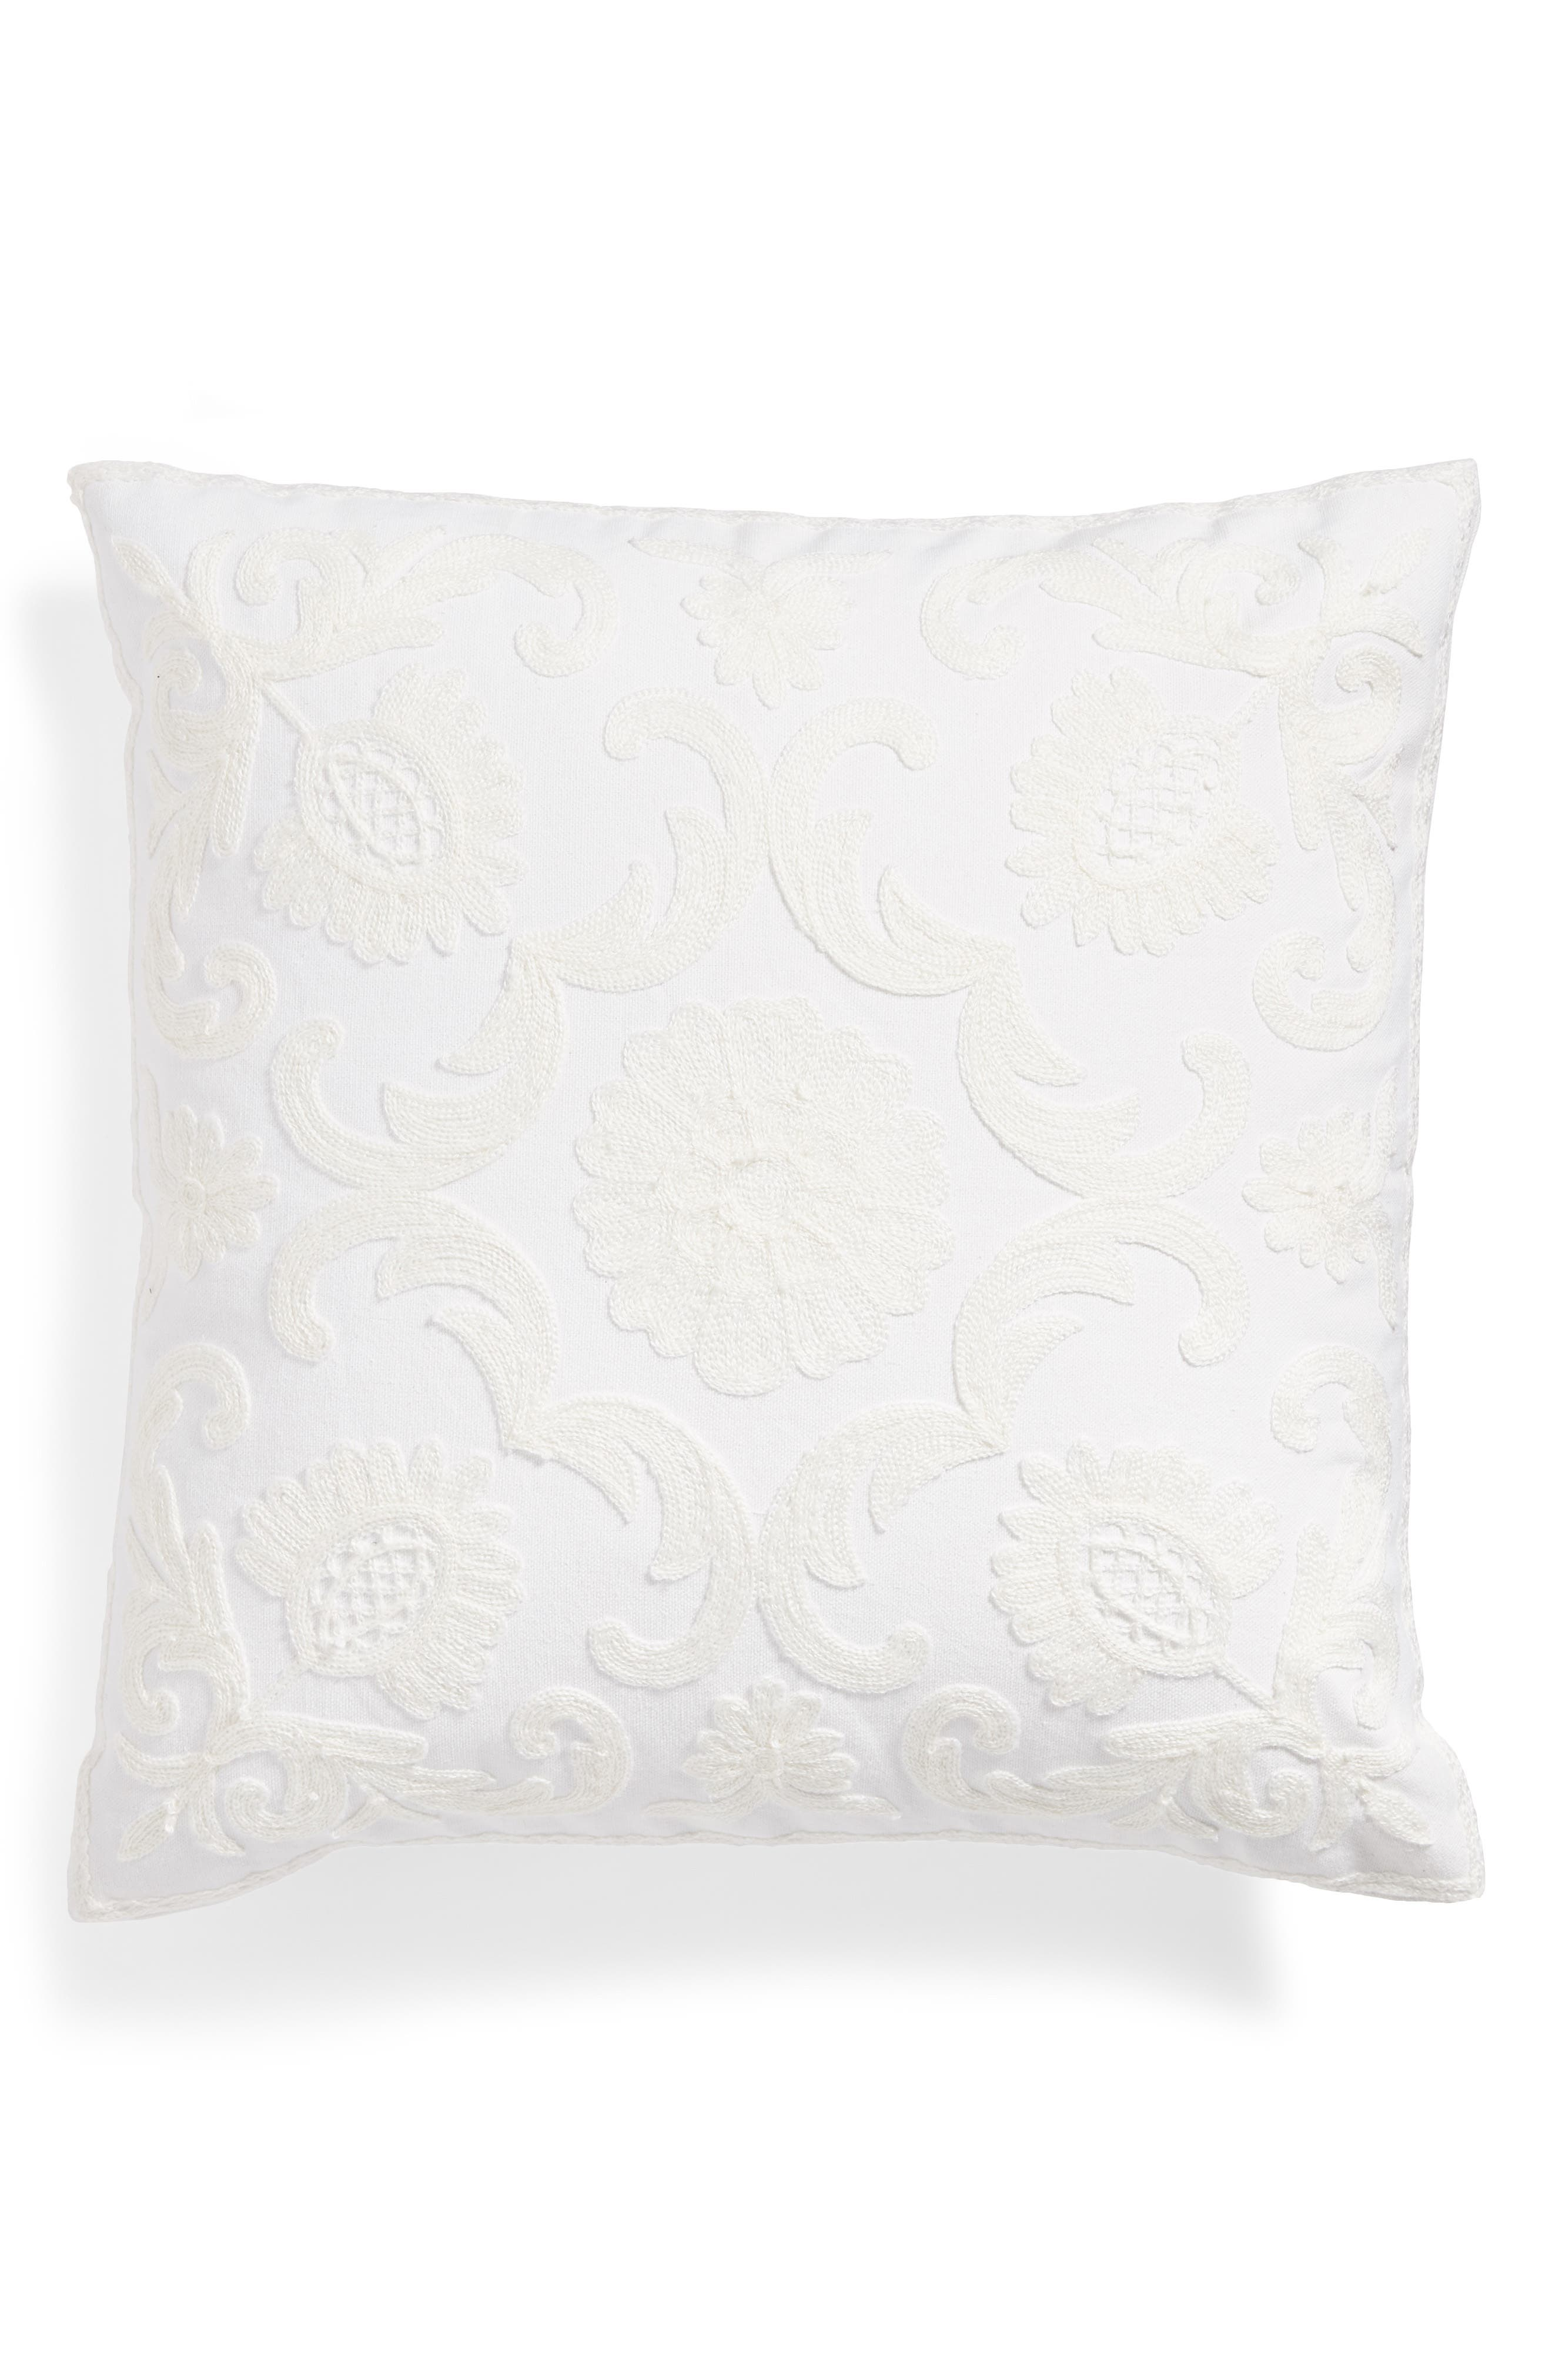 Bree Embroidered Accent Pillow,                             Main thumbnail 1, color,                             100